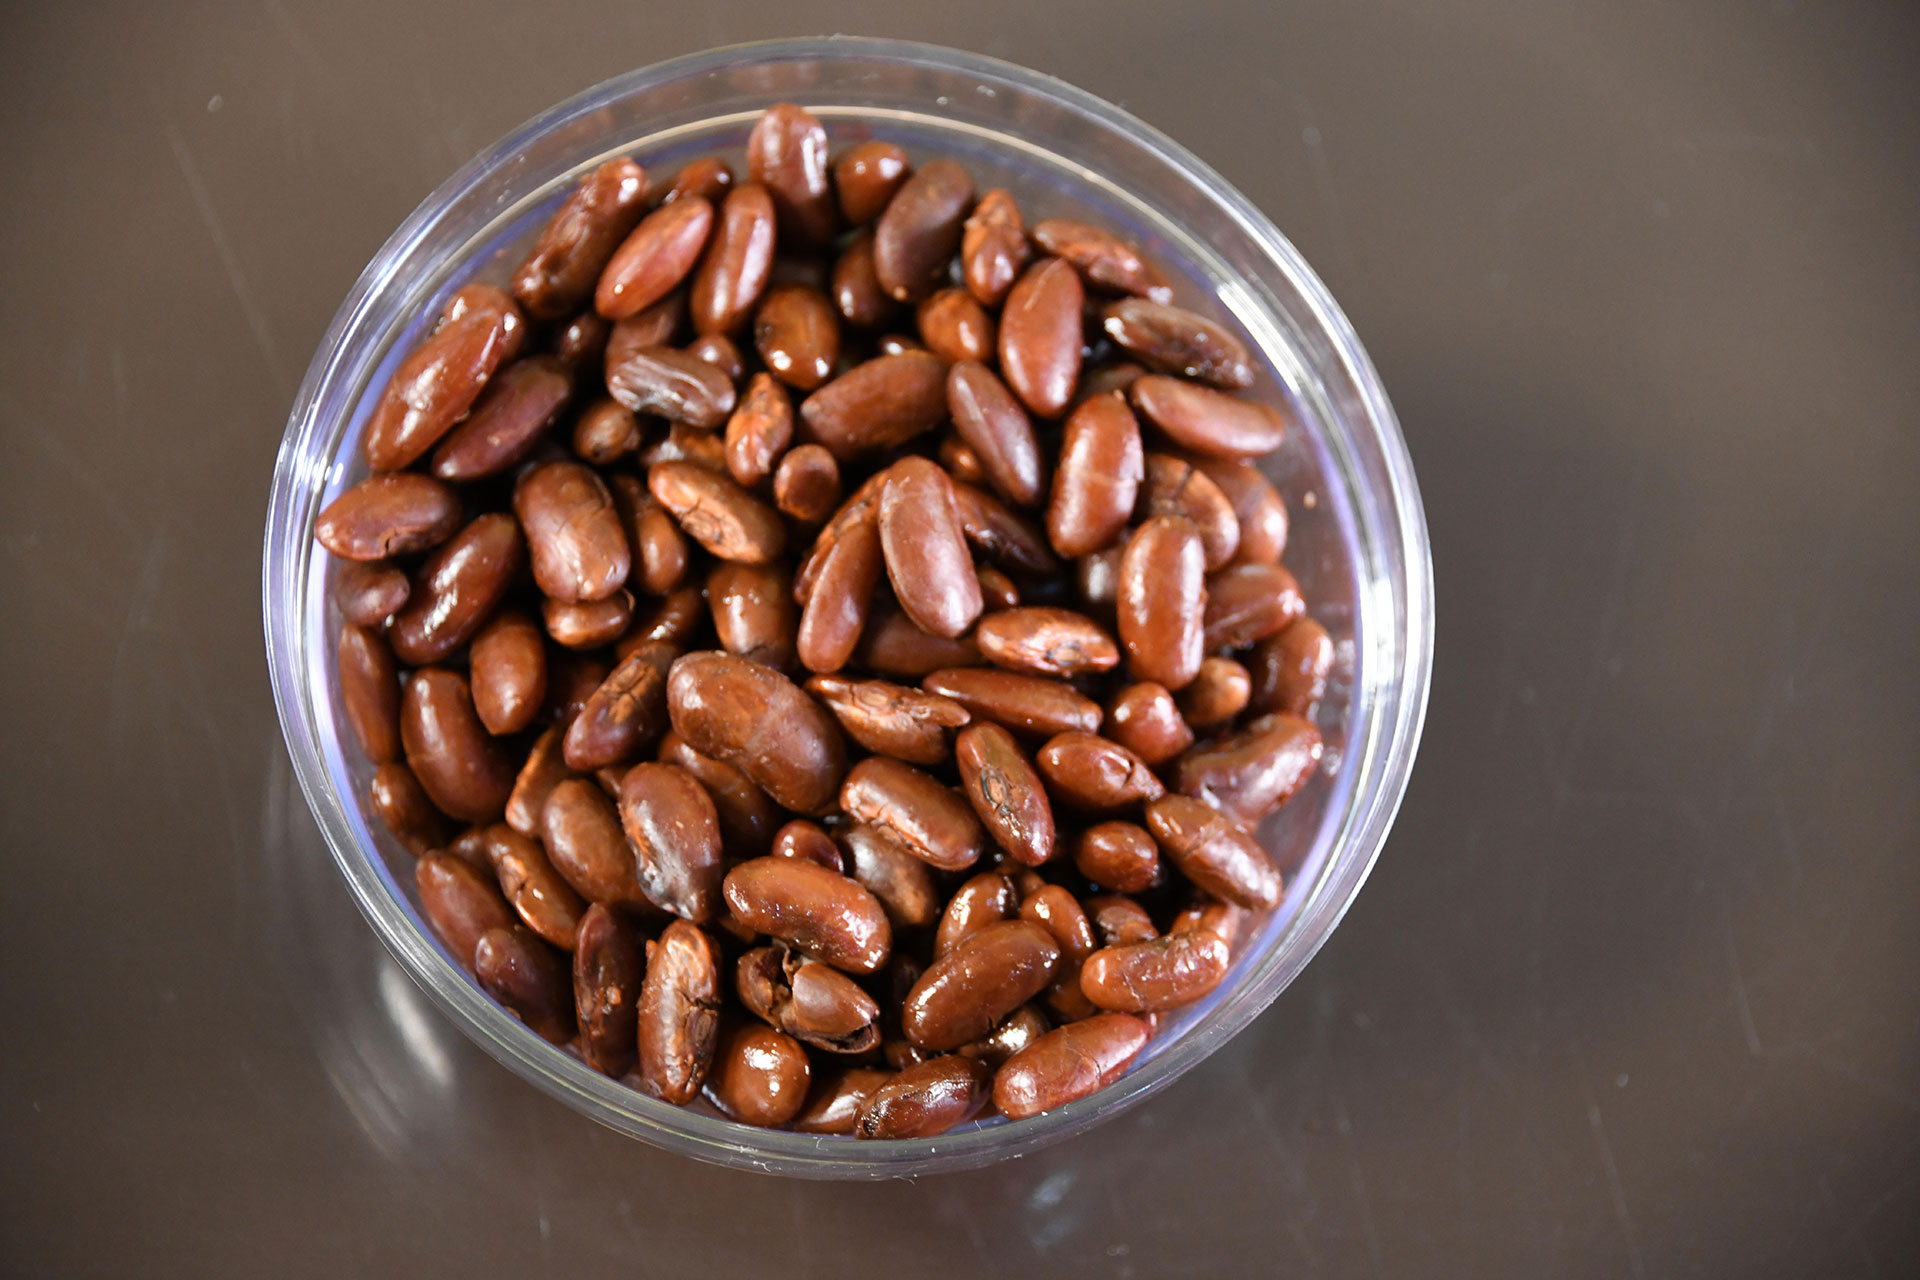 Bean Hack: Get rid of excess gas in beans